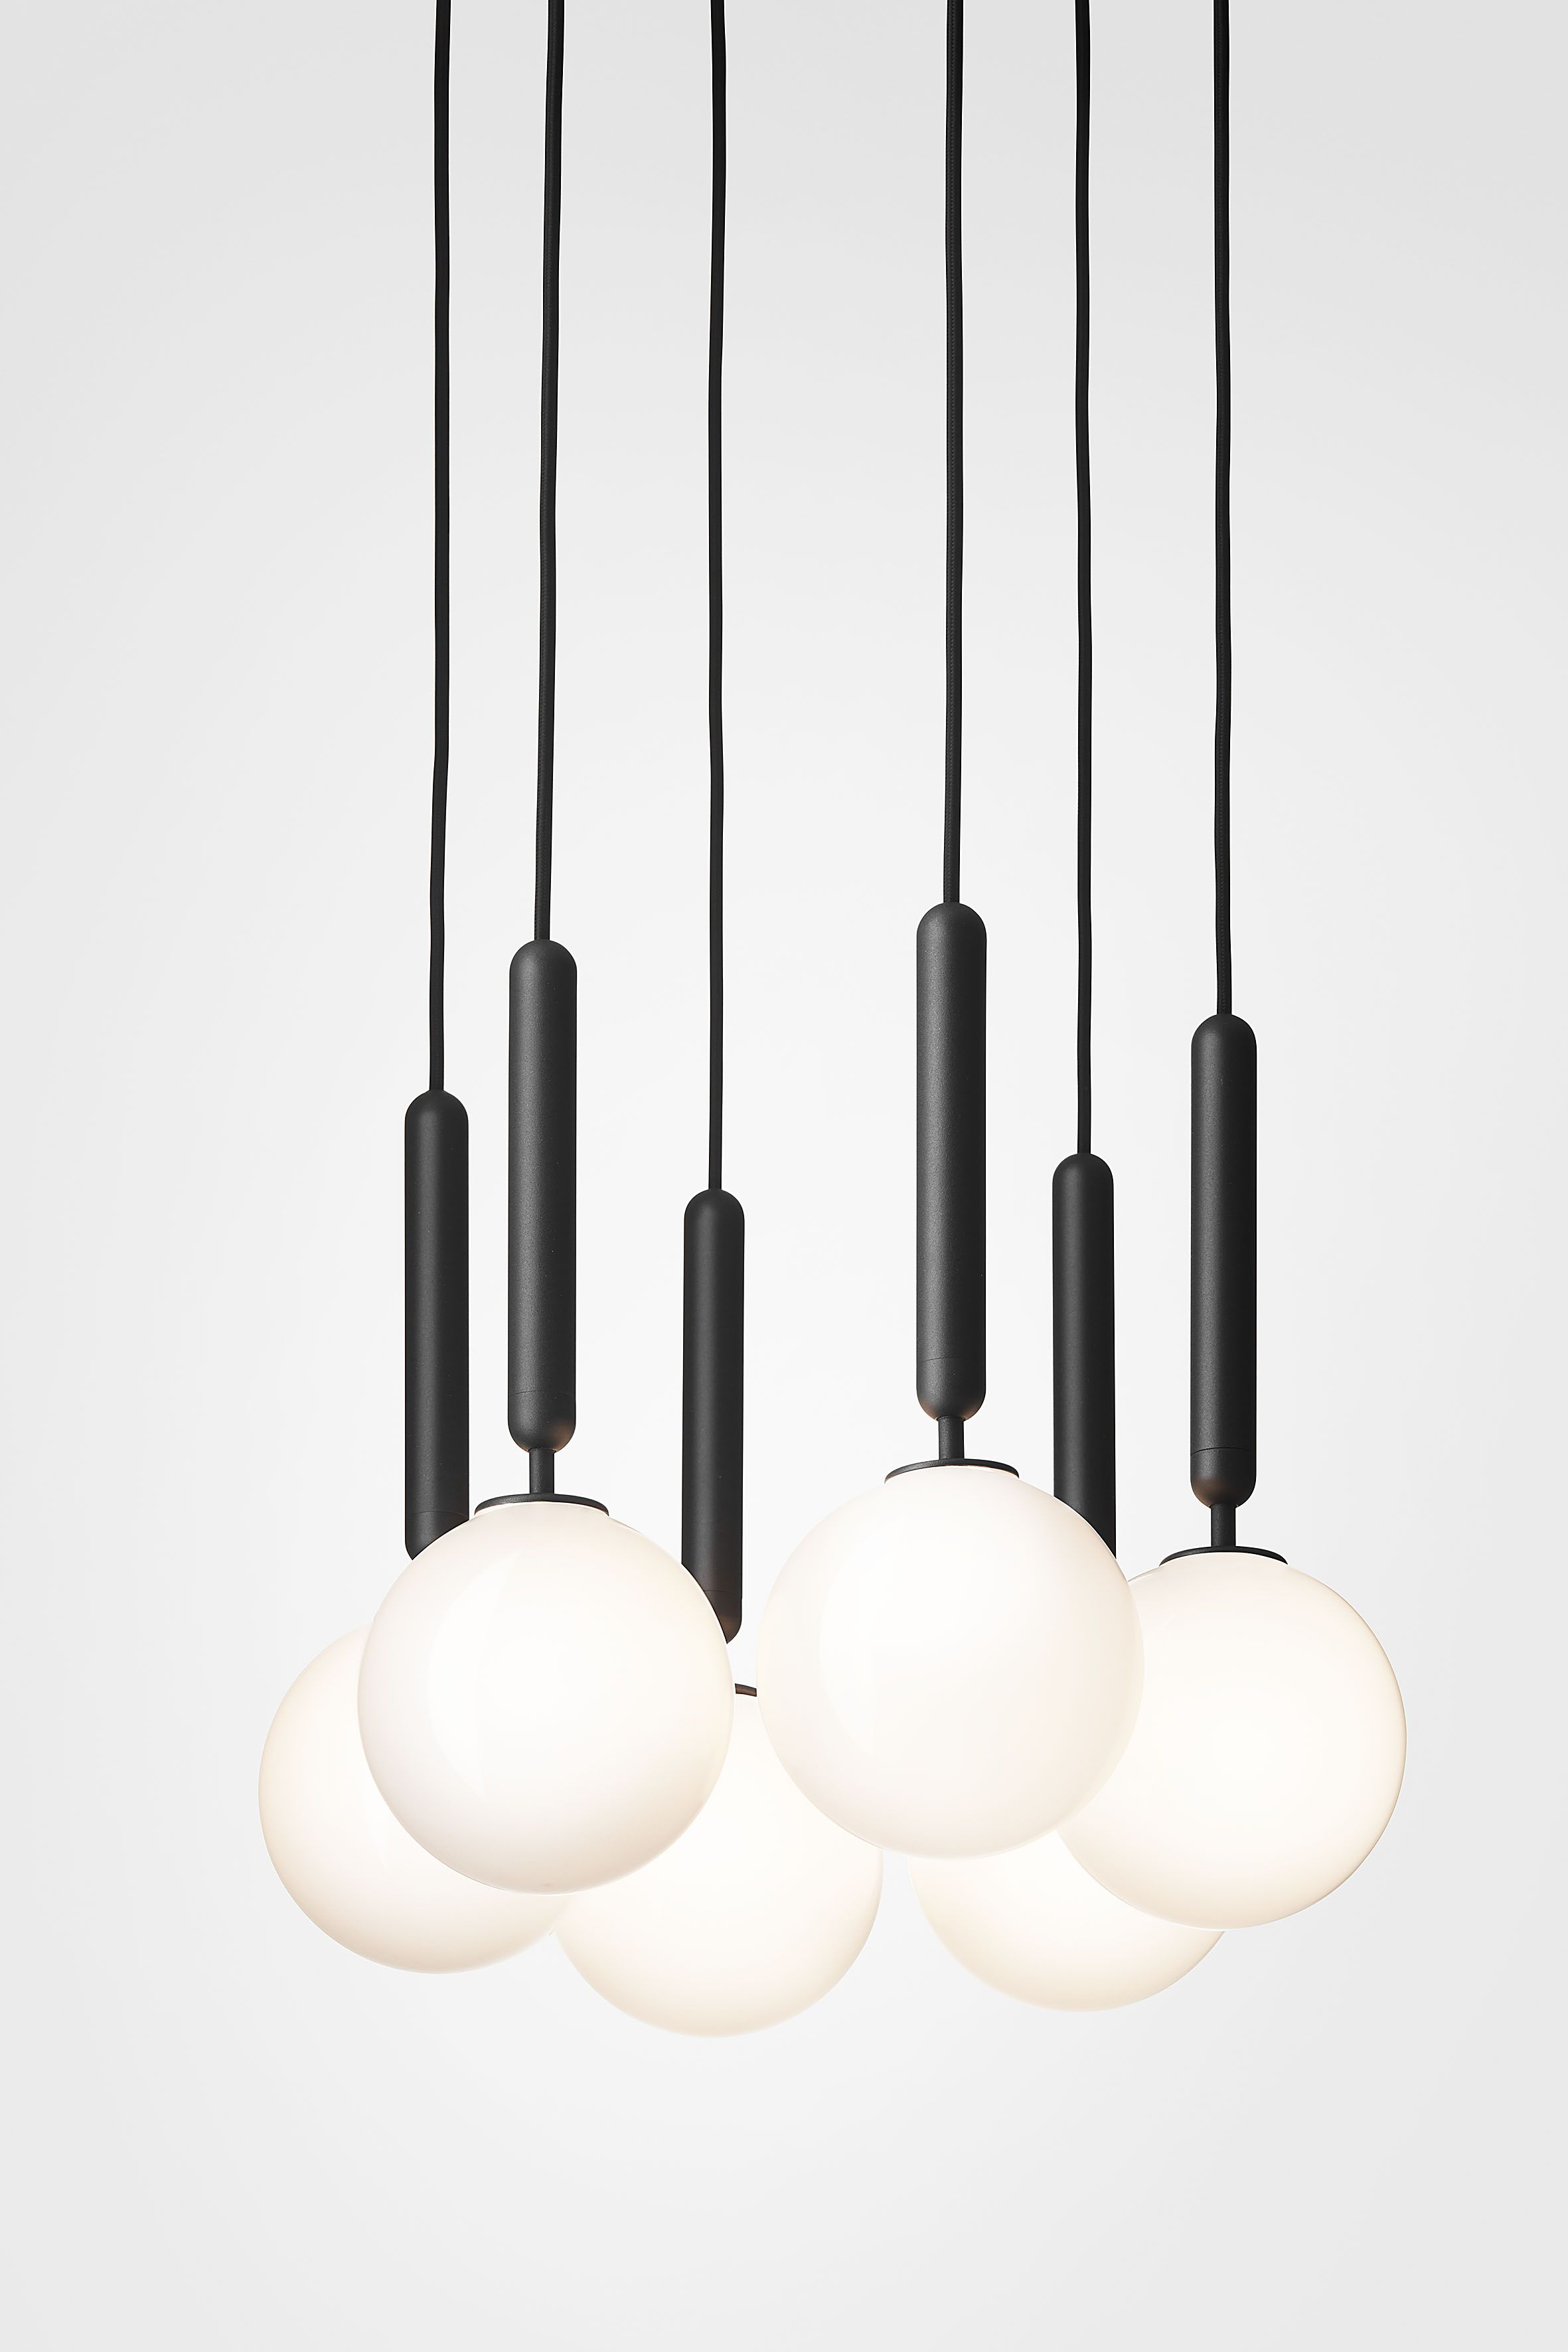 nordic lighting. MIIRA 6 By NUURA The Unique And Nordic Lighting Collection, Miira, Is Created In